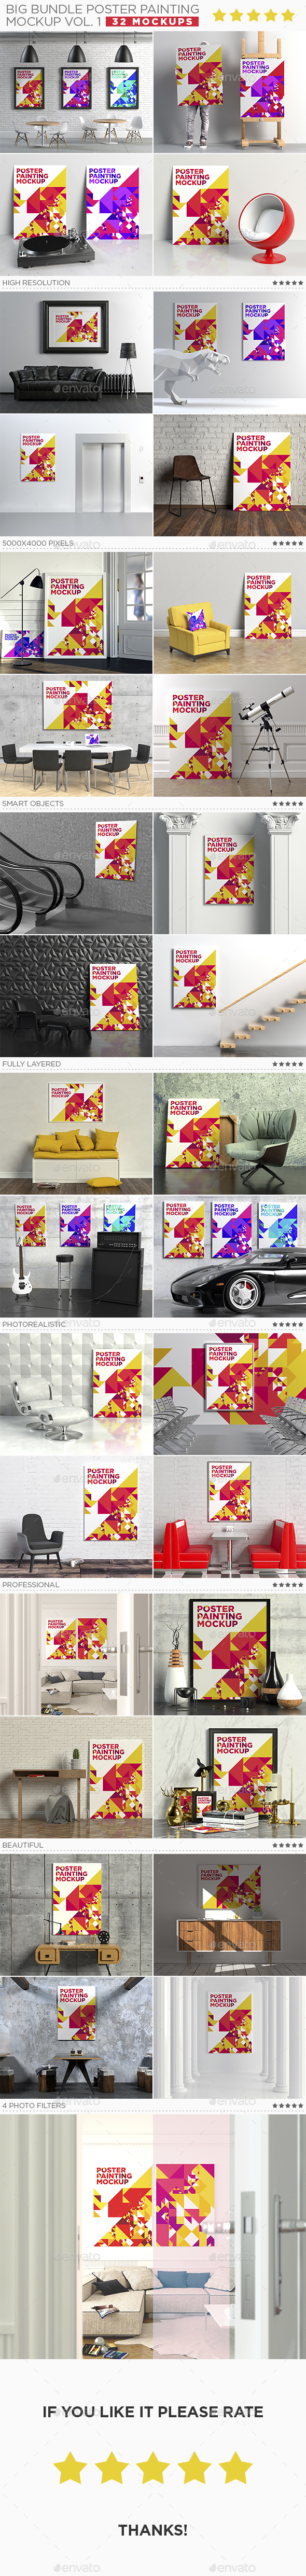 Big Bundle Poster Painting Mockup Vol. 1 - Posters Print